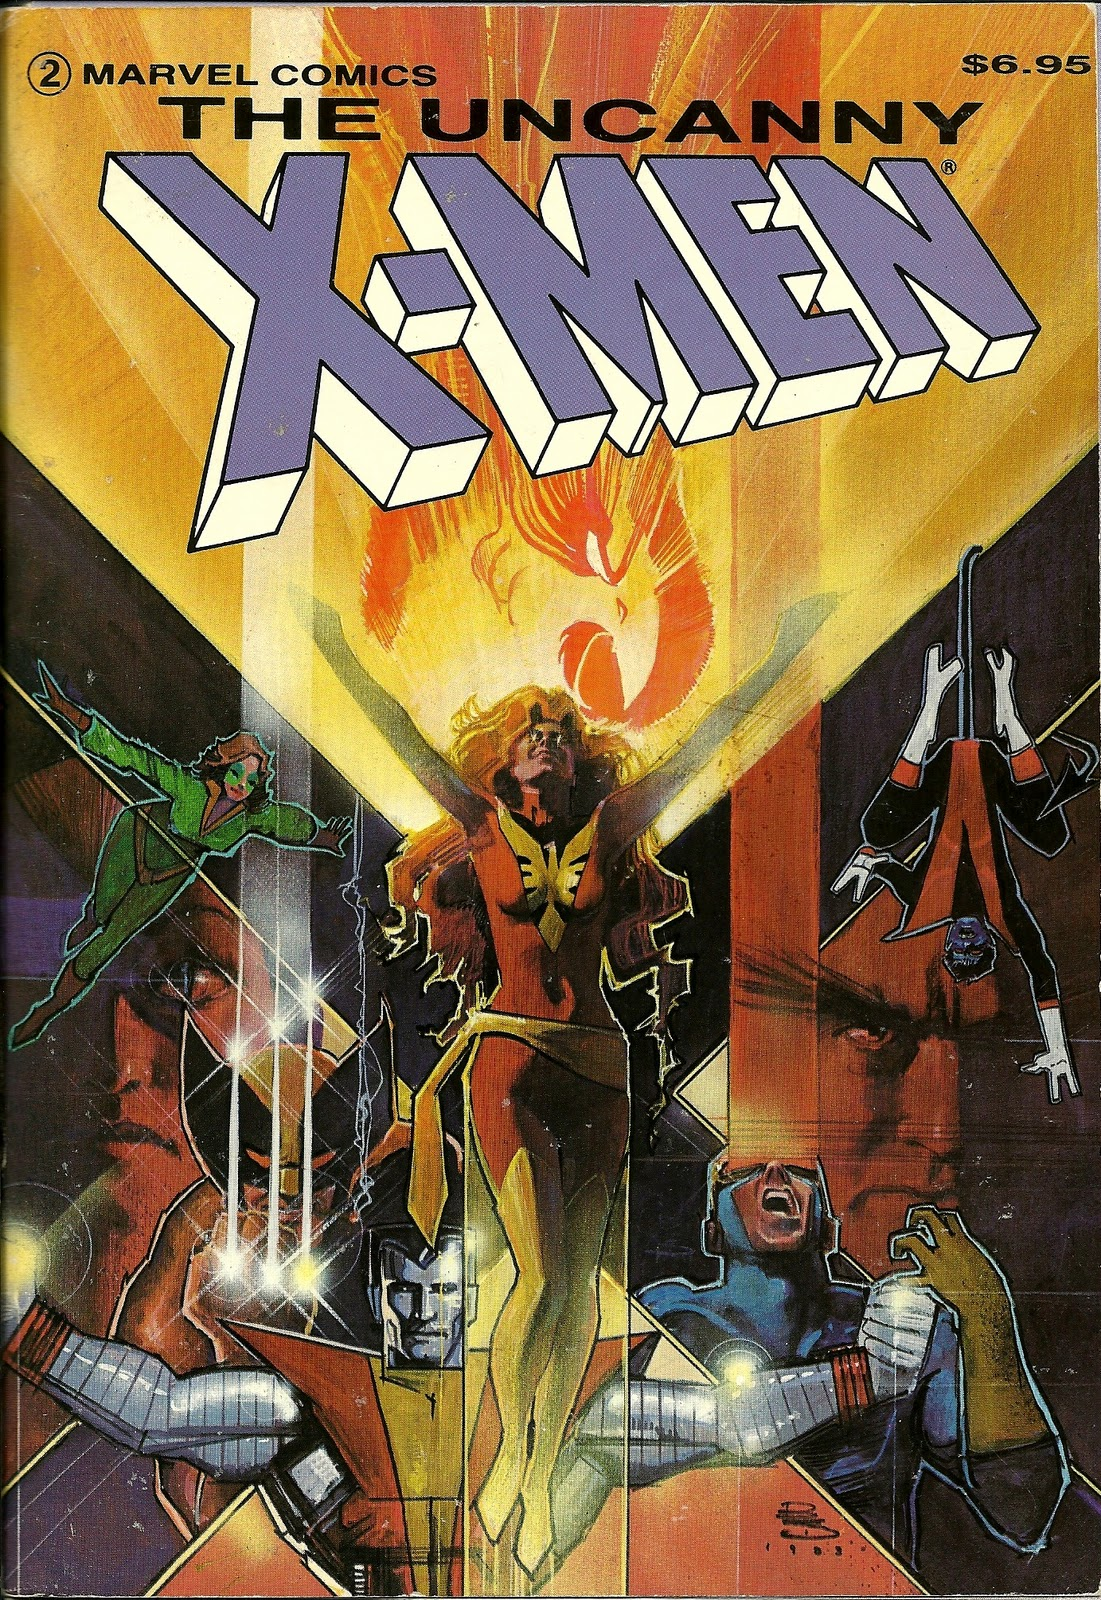 samhumphries :      brianmichaelbendis :       Uncanny X-men by Bill Sienkiewicz , 1984      My first ever trade paperback. I had been reading Silvestri-era X-Men and this story was completely new to me.  I read it all in a day.    I still have the book.   It still bugs me that Colossus is placed asymmetrically.      Heyyyy, my first ever trade paperback too. Still have it in a box somewhere, will probably never read it again to preserve my previous affection for it. Everything in here felt SUPER ADULT when I got it.